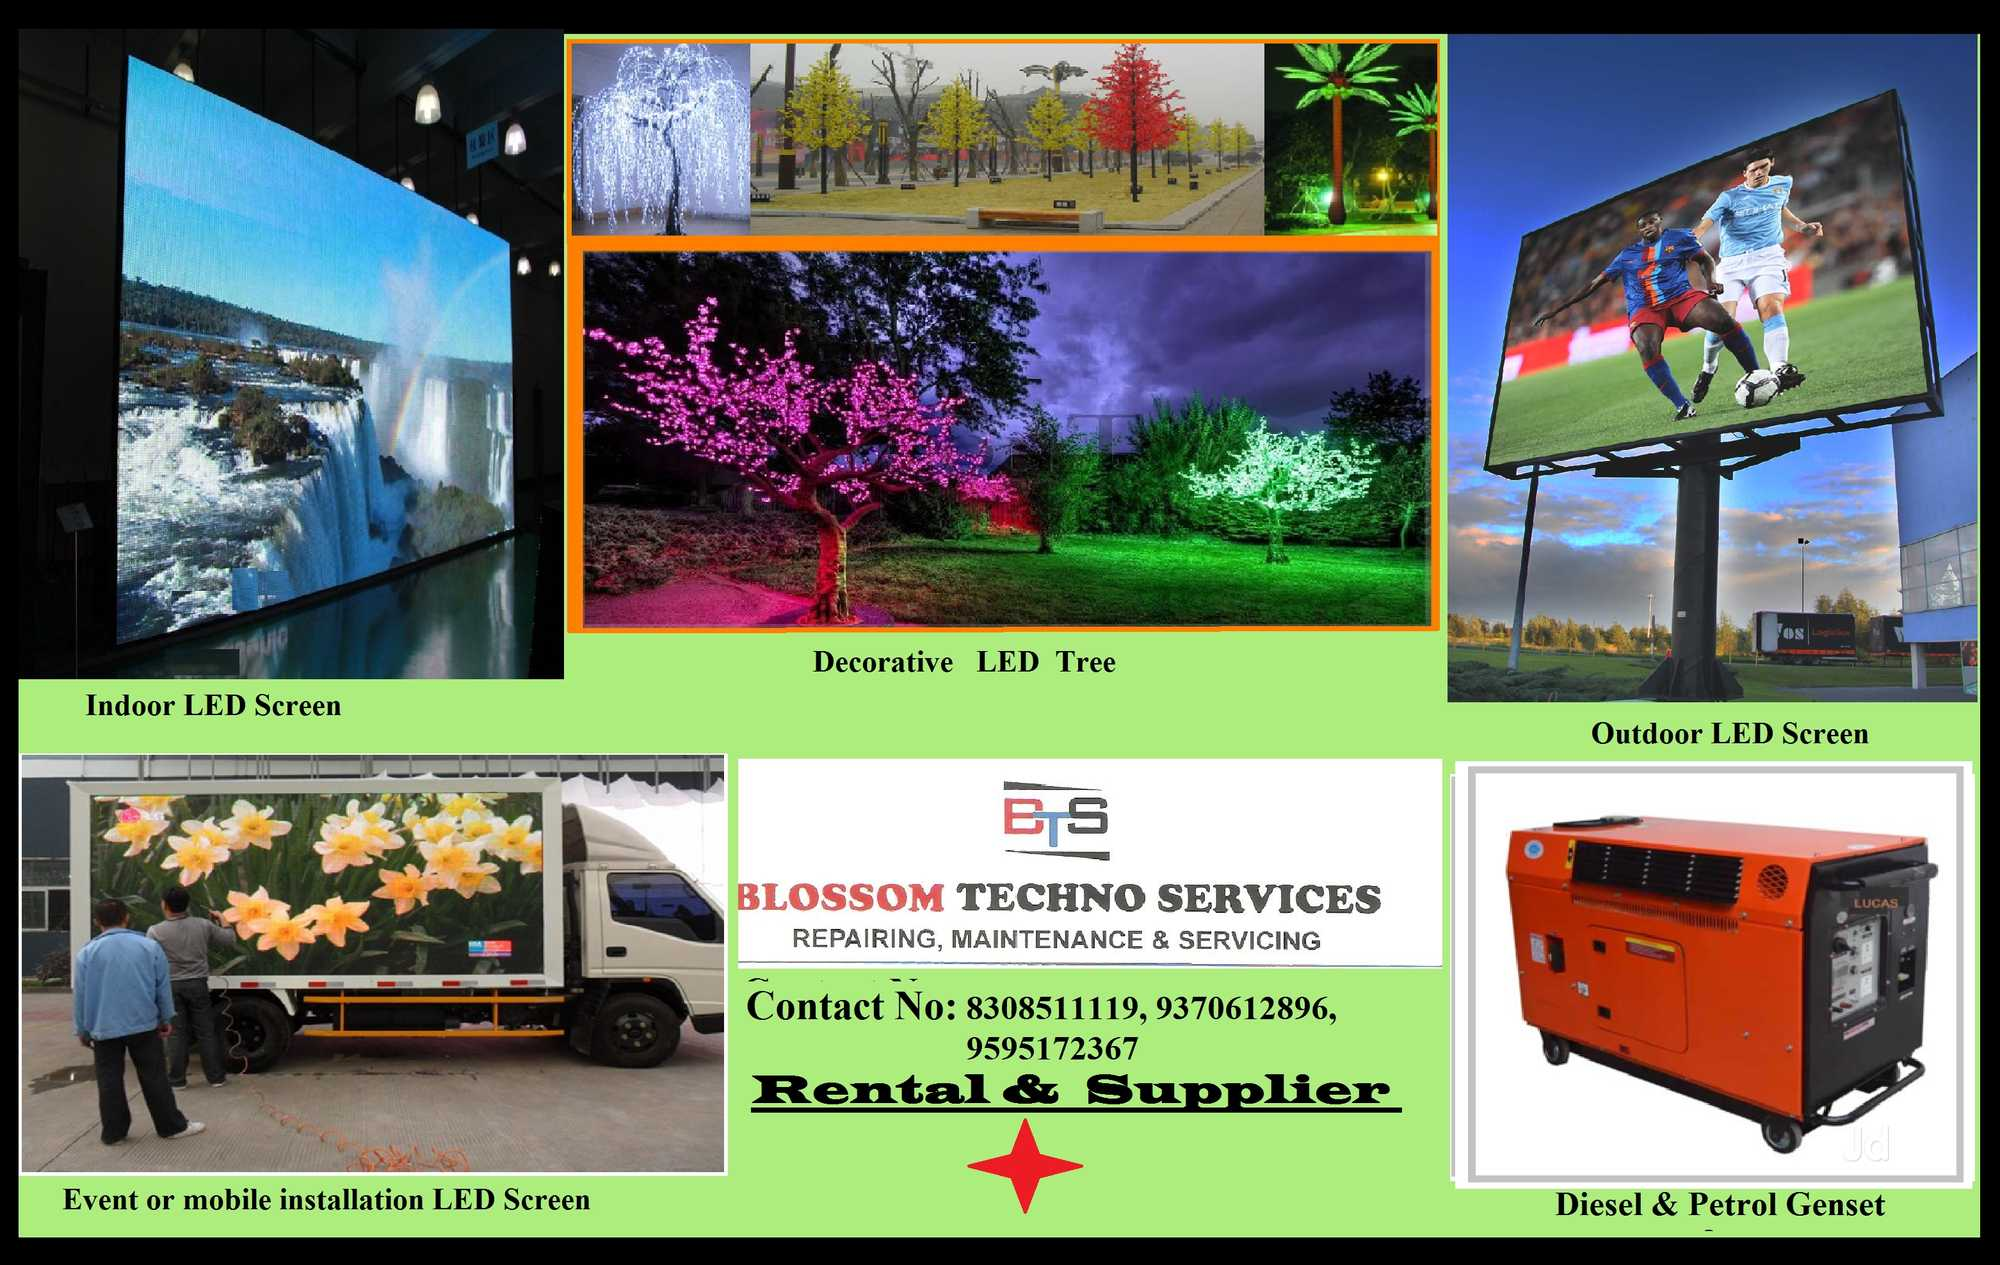 Top 10 Led Screens On Hire in Goa - Best Led Screen On Rent